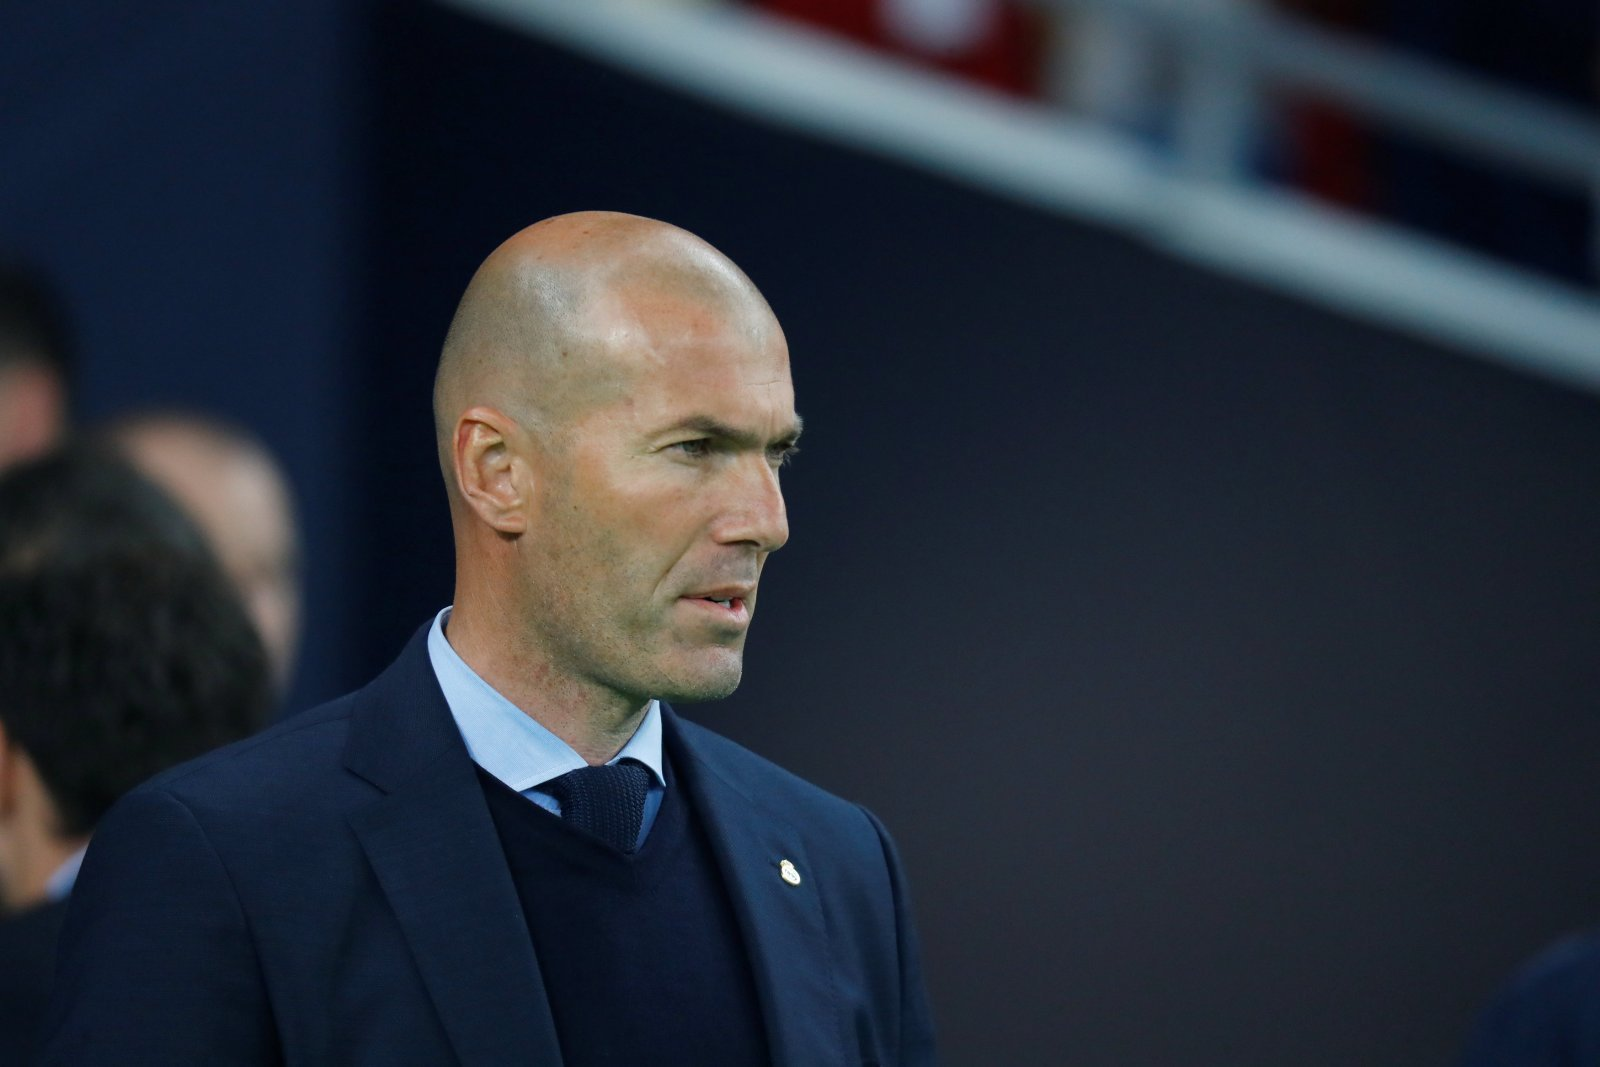 Real Madrid: Fans slate club post after drab draw